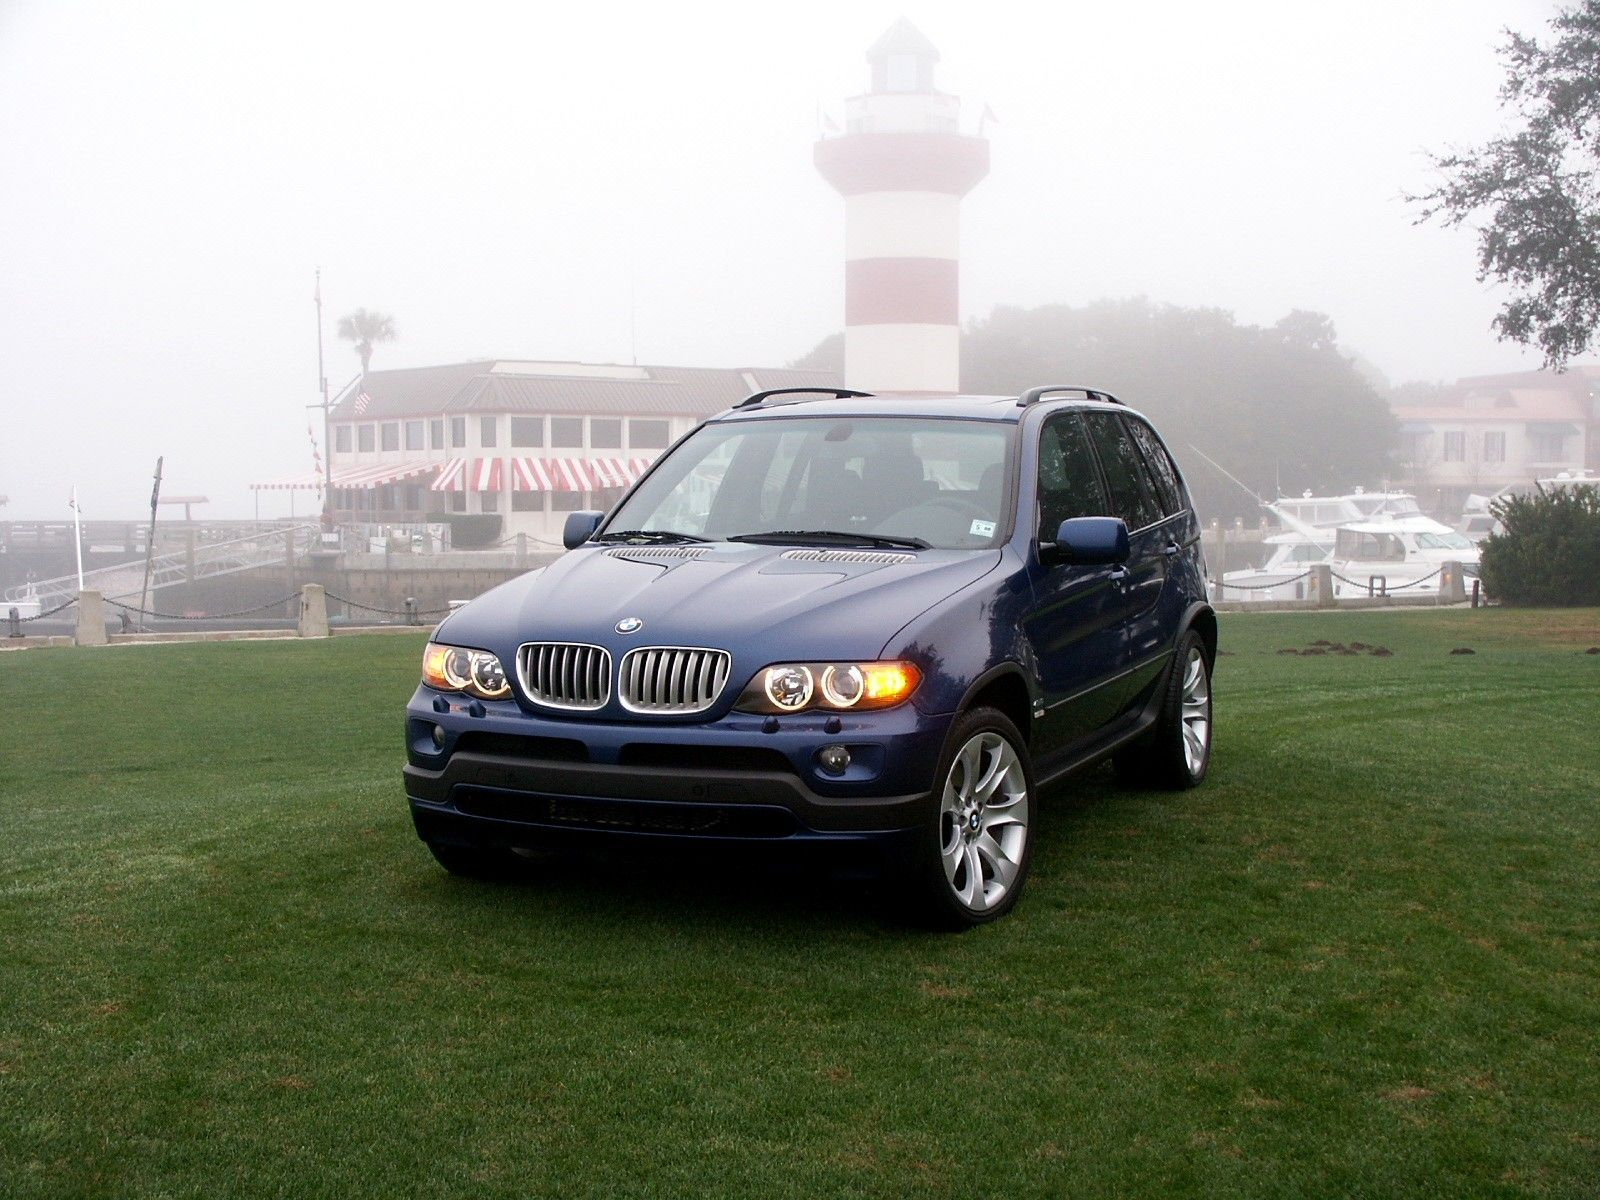 2005 Bmw X5 Have To Say One Of My Favorites Bmw X5 Bmw